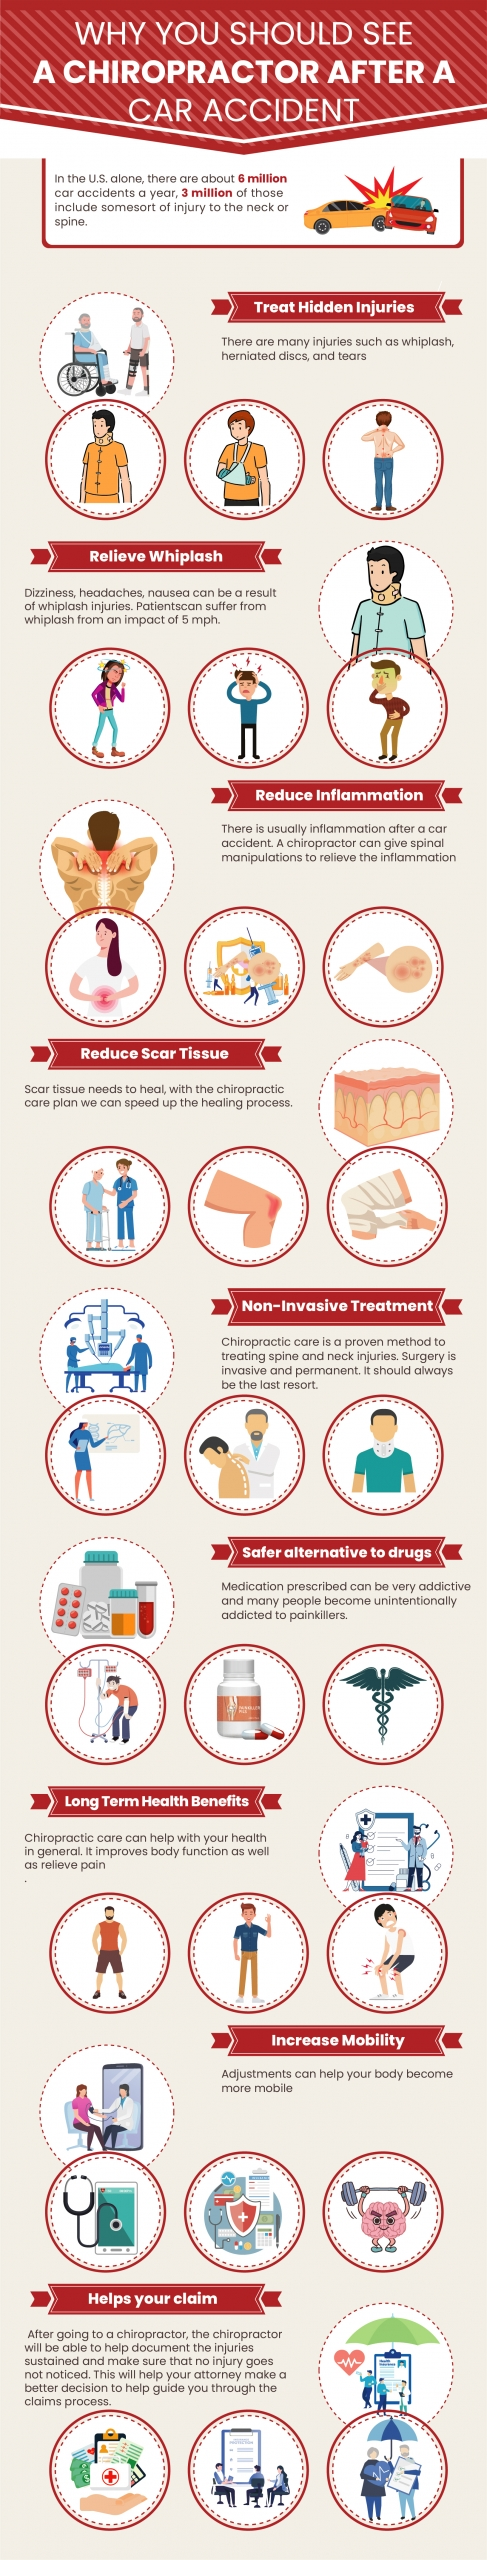 Infographic that shows how chiropractors treat car accident injuries